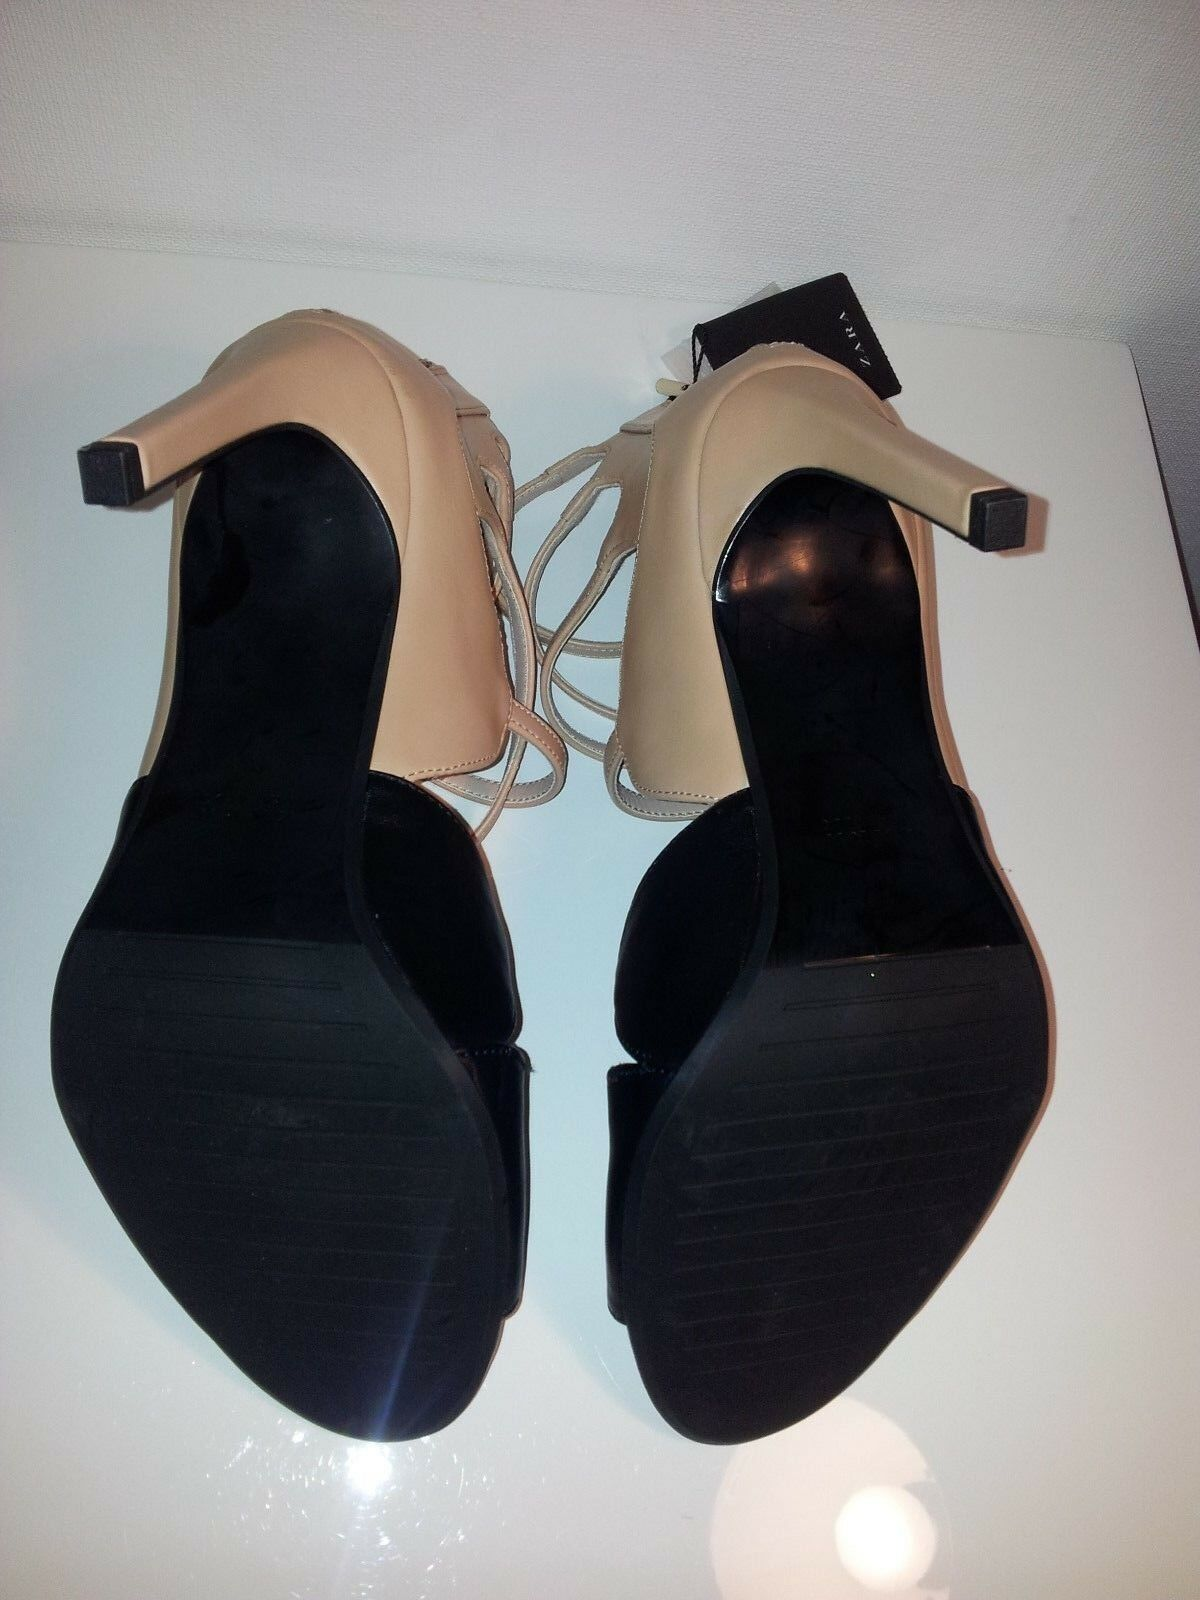 ZARA HIGH two tone  BIEGE BLACK STRAPPY HIGH ZARA HEELS SANDALS, SIZE 41/8 e2504c